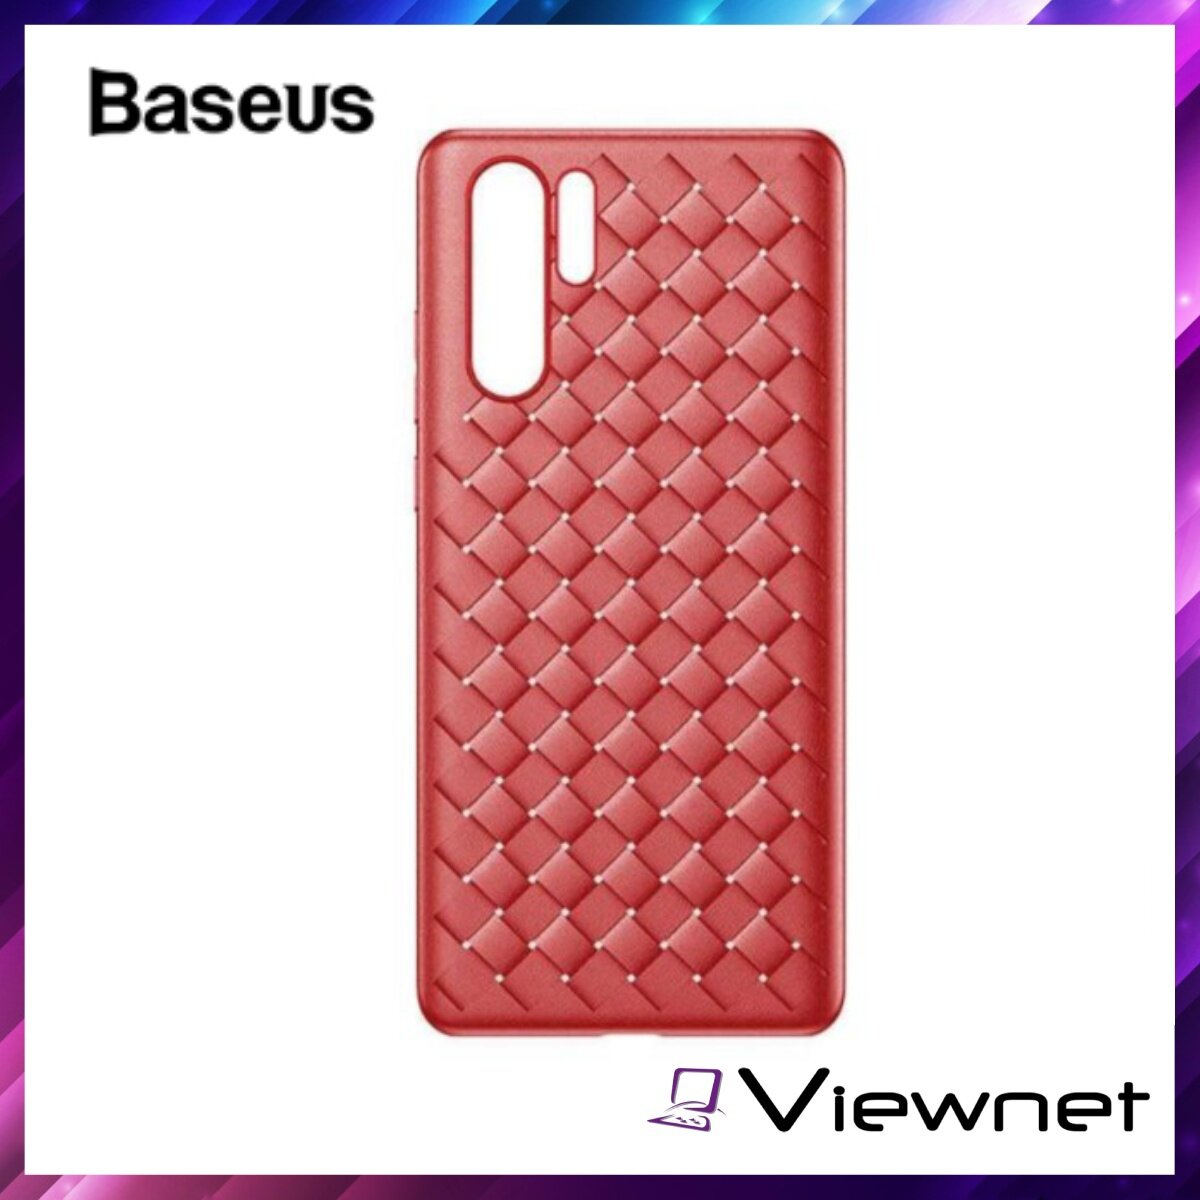 Baseus BV Weaving Case For Huawei P30 Pro, Heat Dssipation, Woven Texture, German Bayer TPU, Extendable and Bendable, Blue / Red